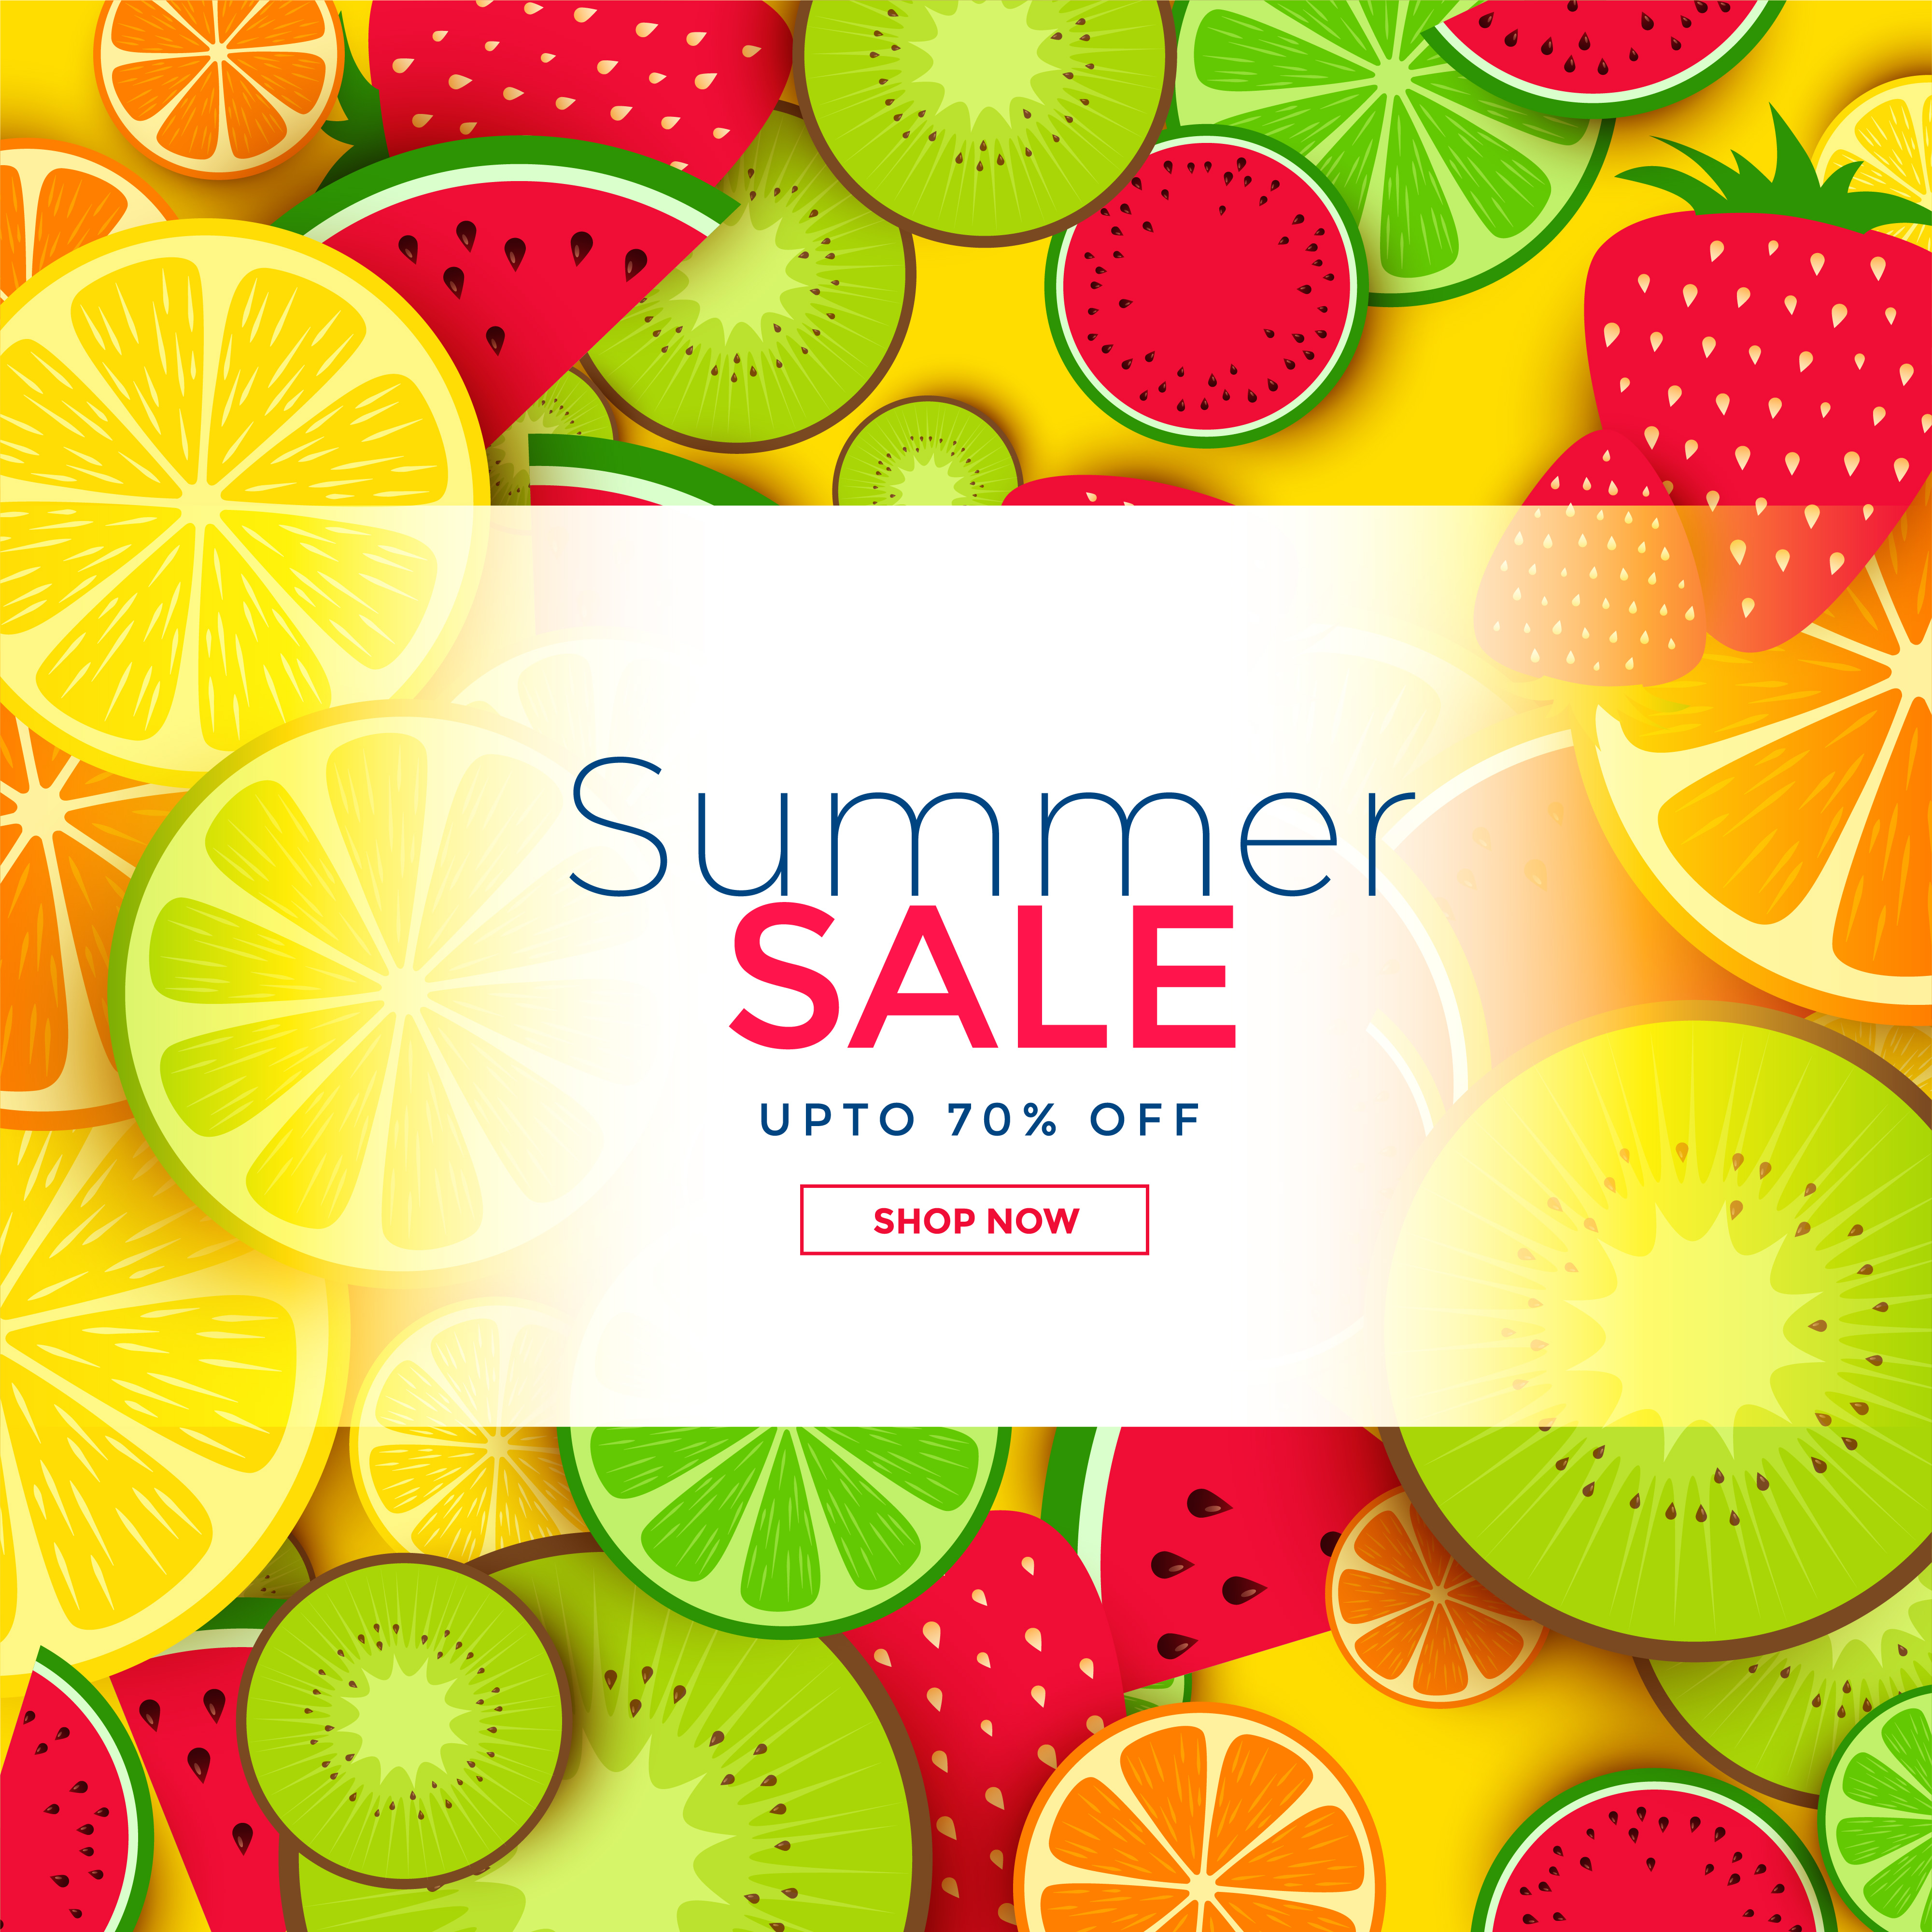 fruits background for summer sale download free vector